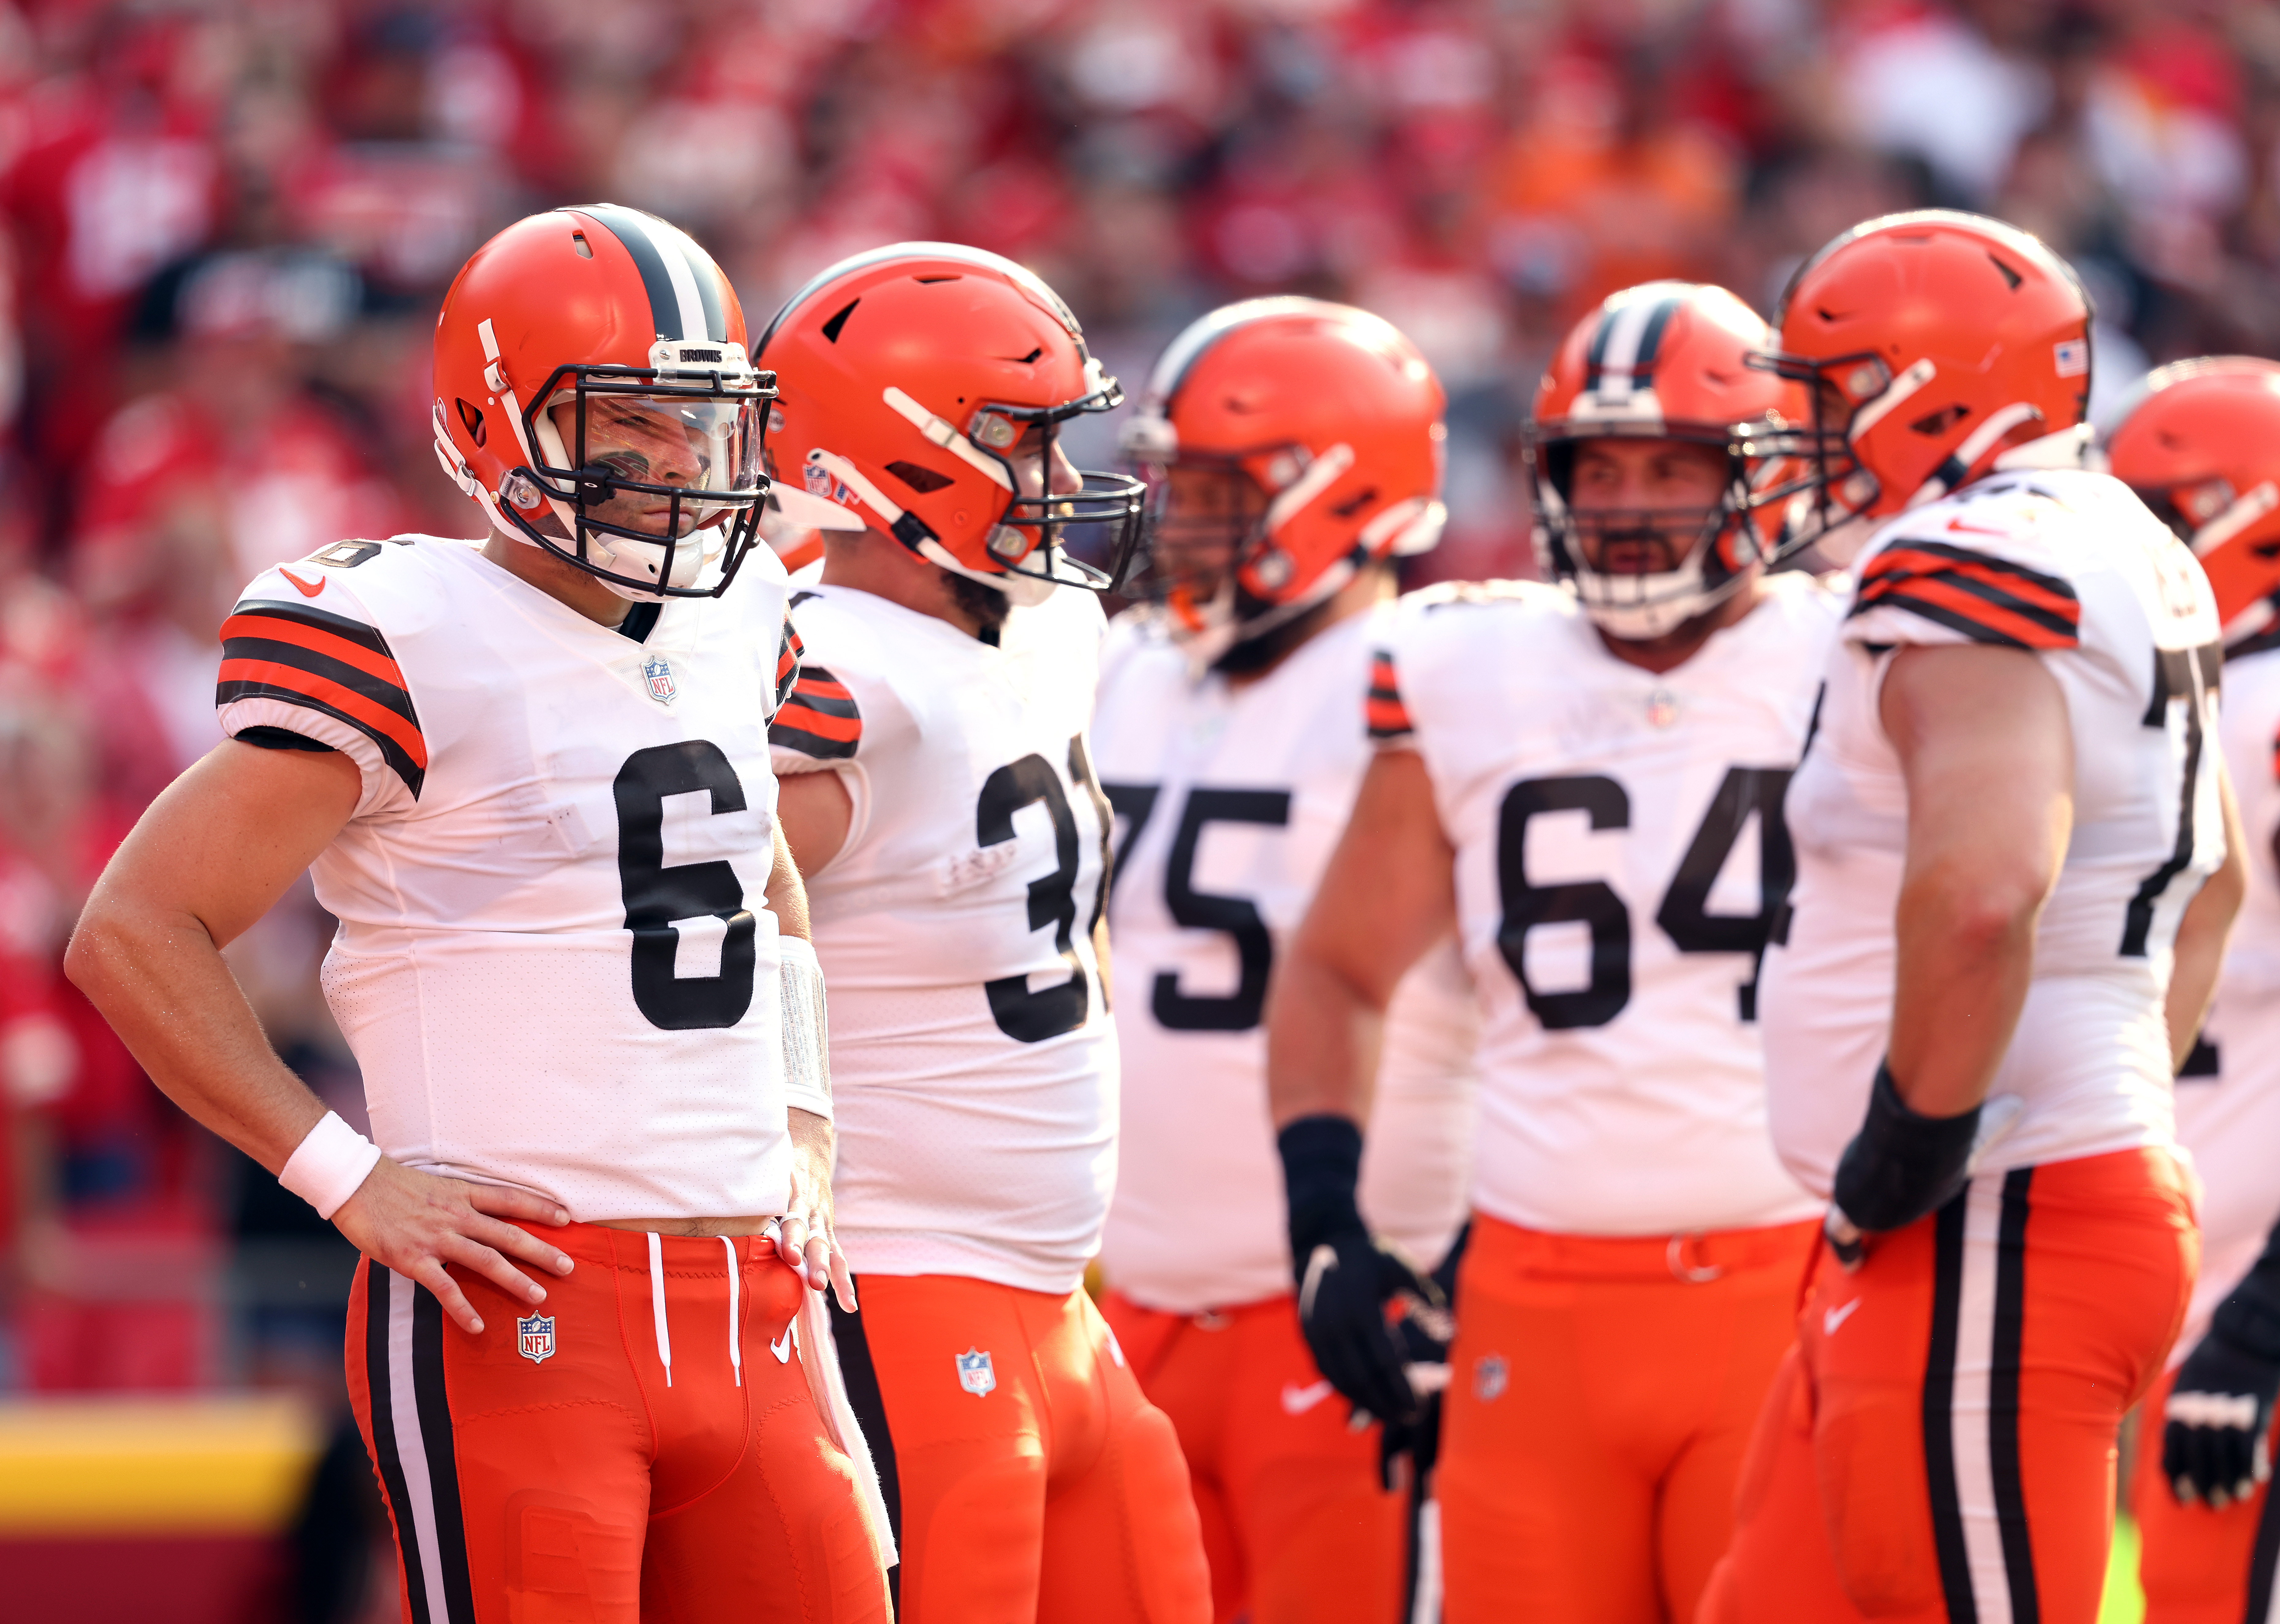 Quarterback Baker Mayfield #6 of the Cleveland Browns waits during a timeout in the game against the Kansas City Chiefs at Arrowhead Stadium on September 12, 2021 in Kansas City, Missouri.